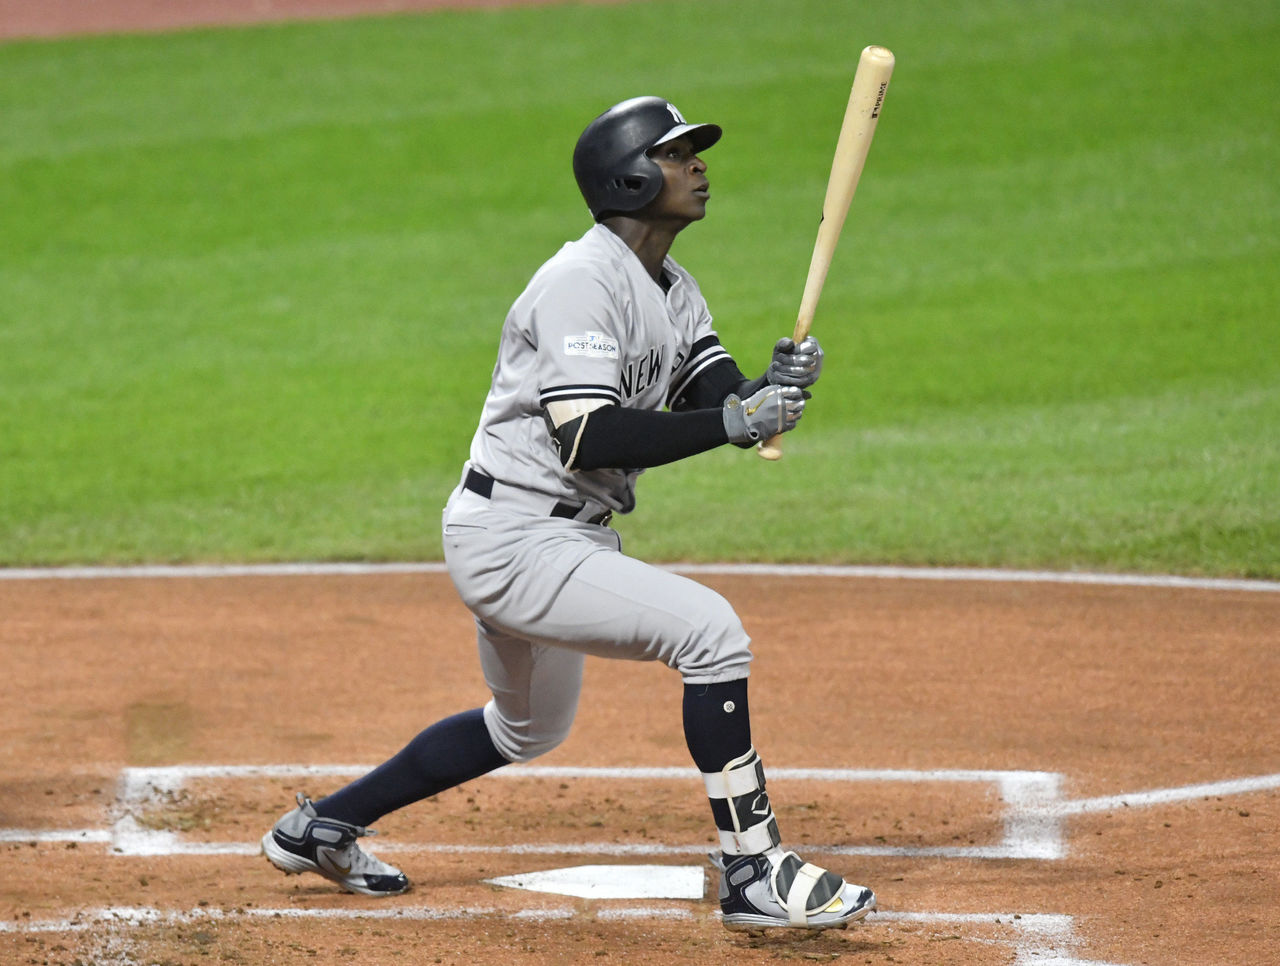 Cropped 2017 10 12t002613z 173701902 nocid rtrmadp 3 mlb alds new york yankees at cleveland indians